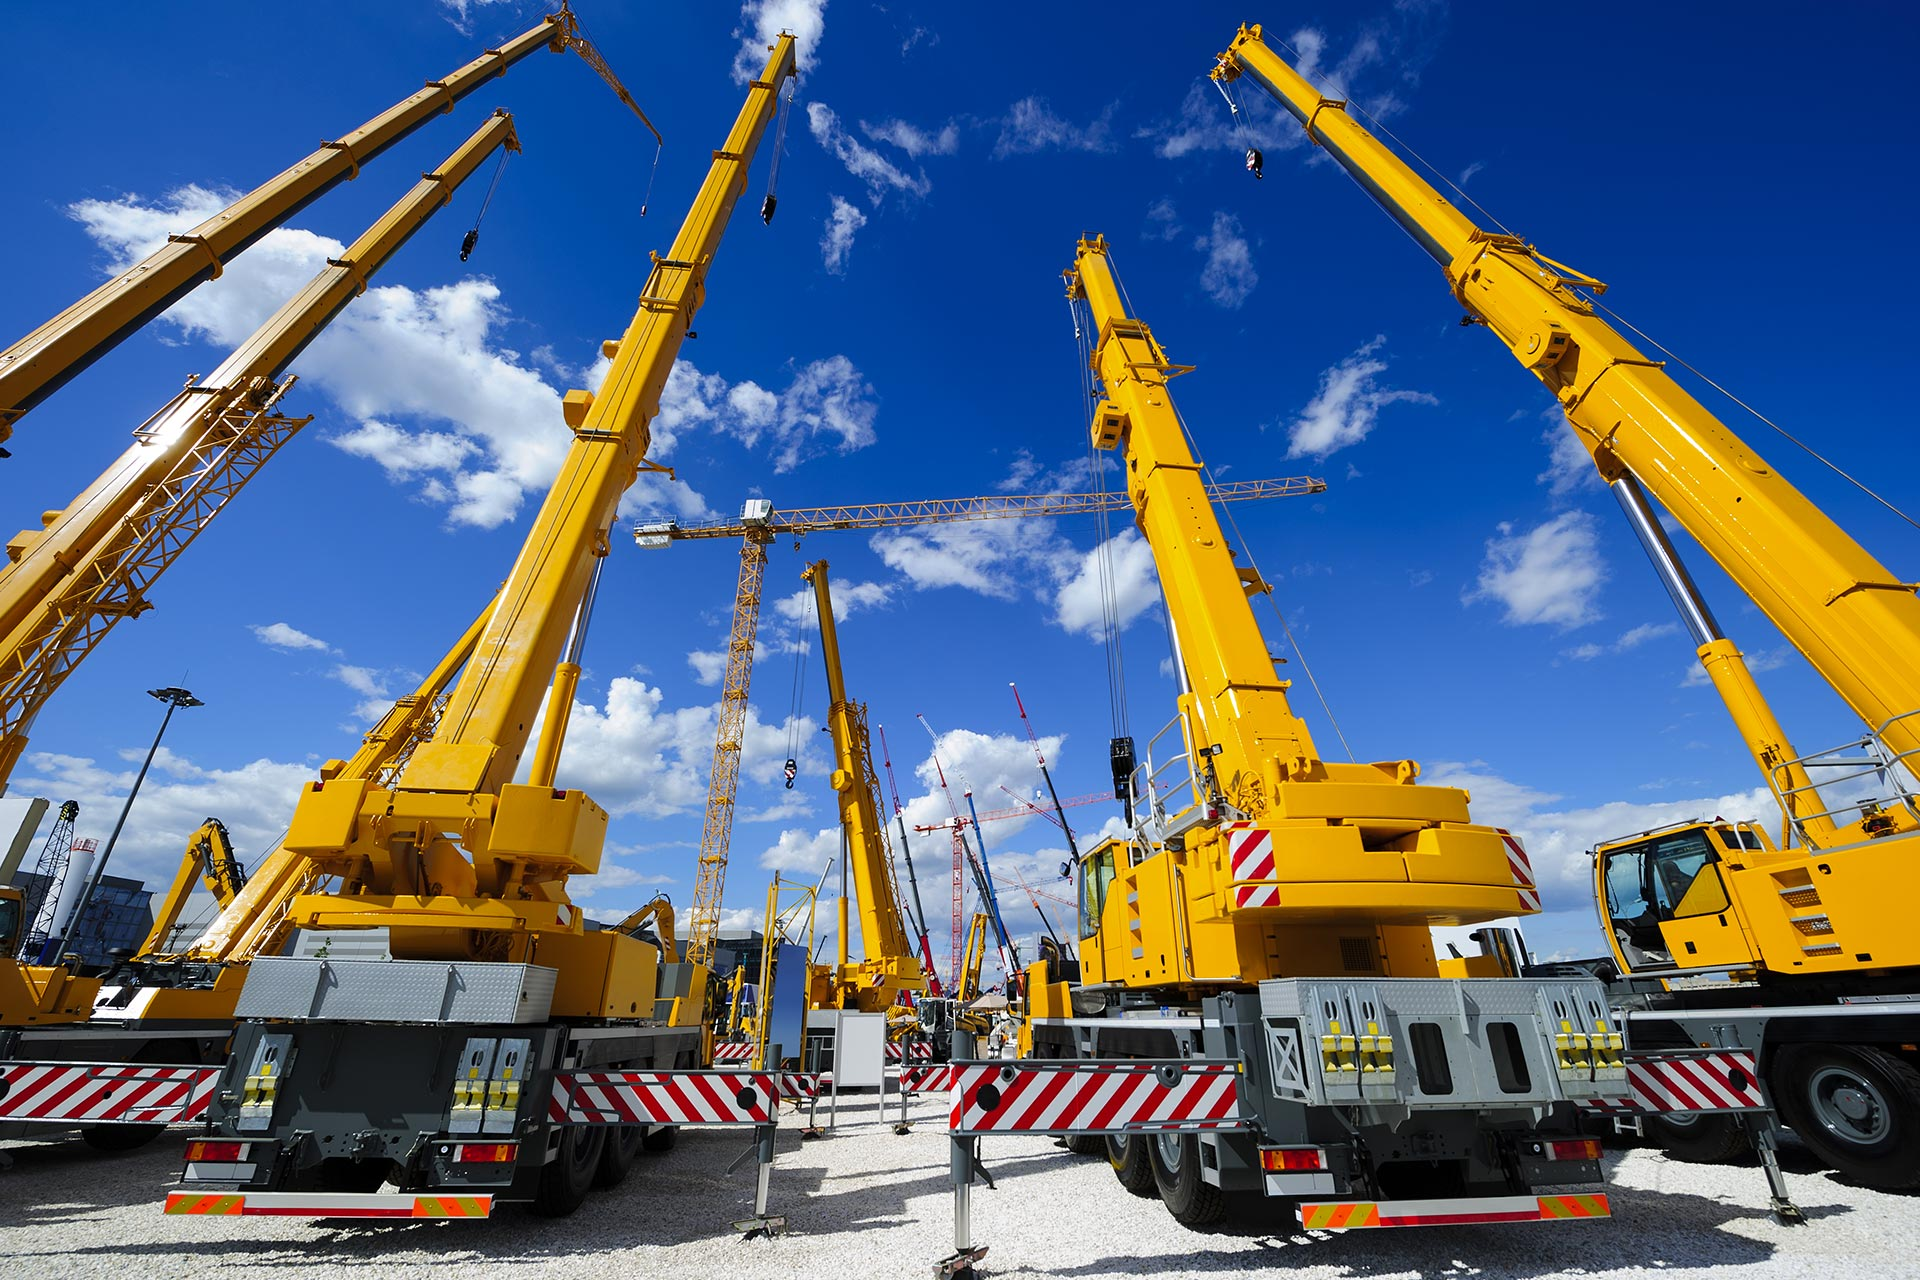 manutention-grue-grue-mobilie-navale-industrie-commerce